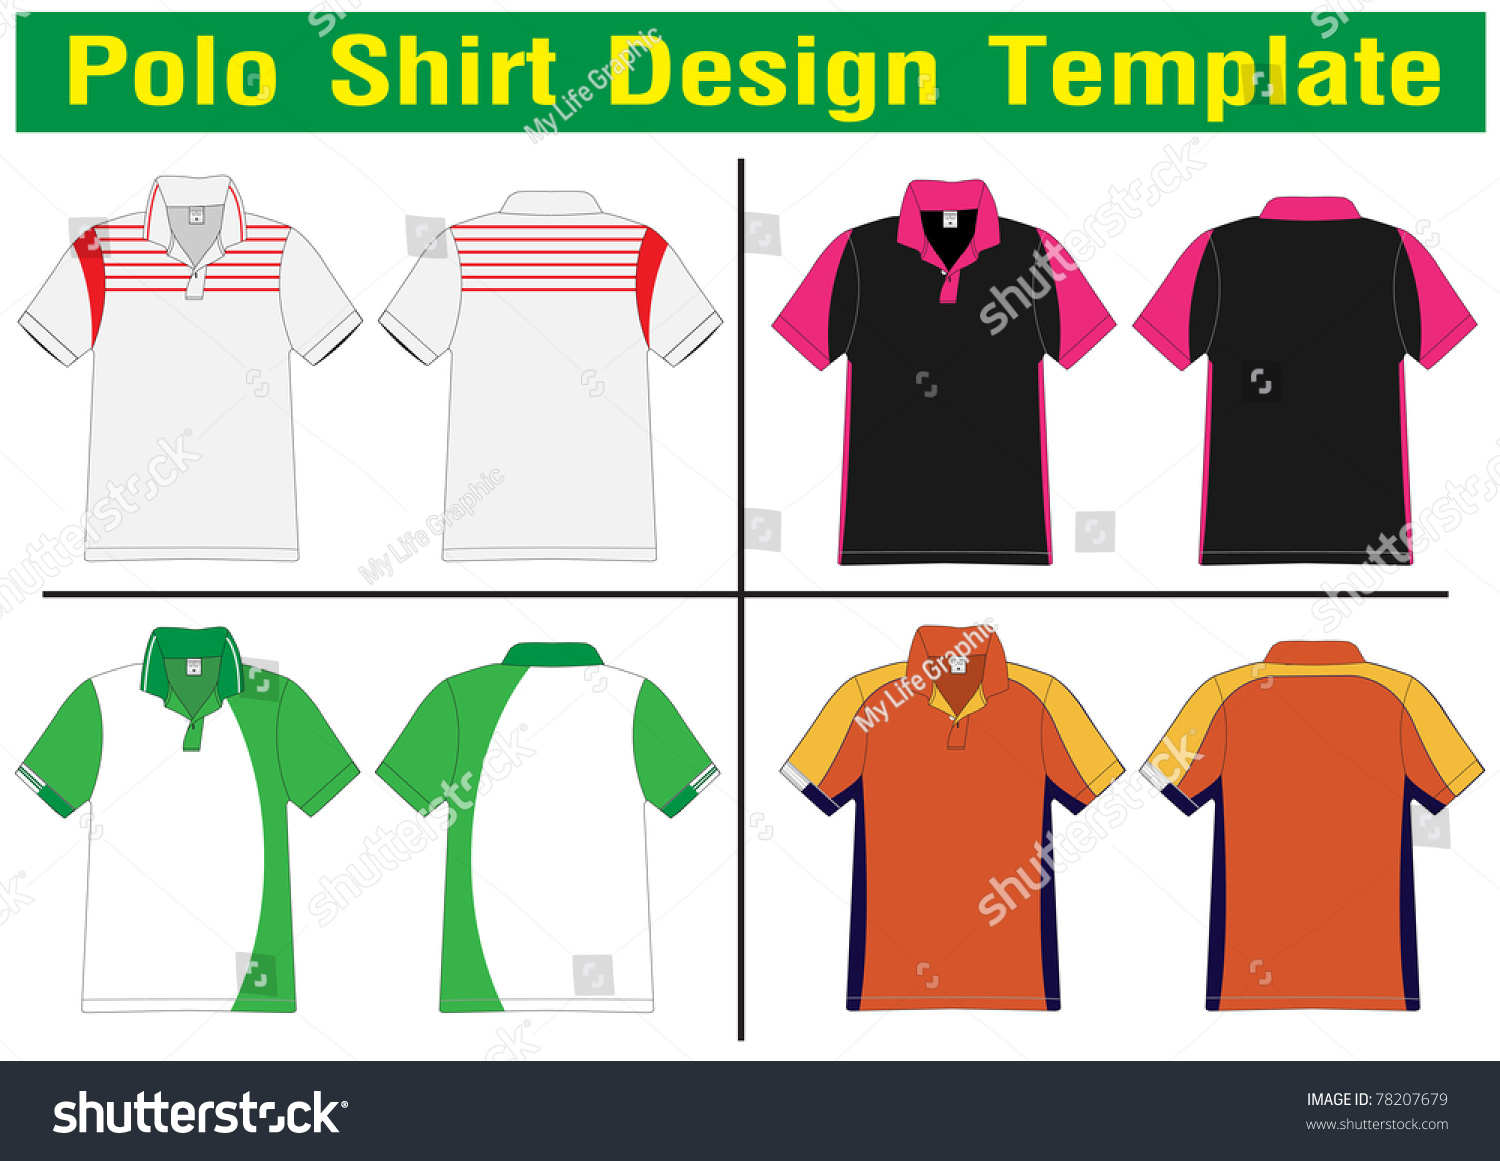 Polo shirt design lined vector template stock vector for Polo shirt design template